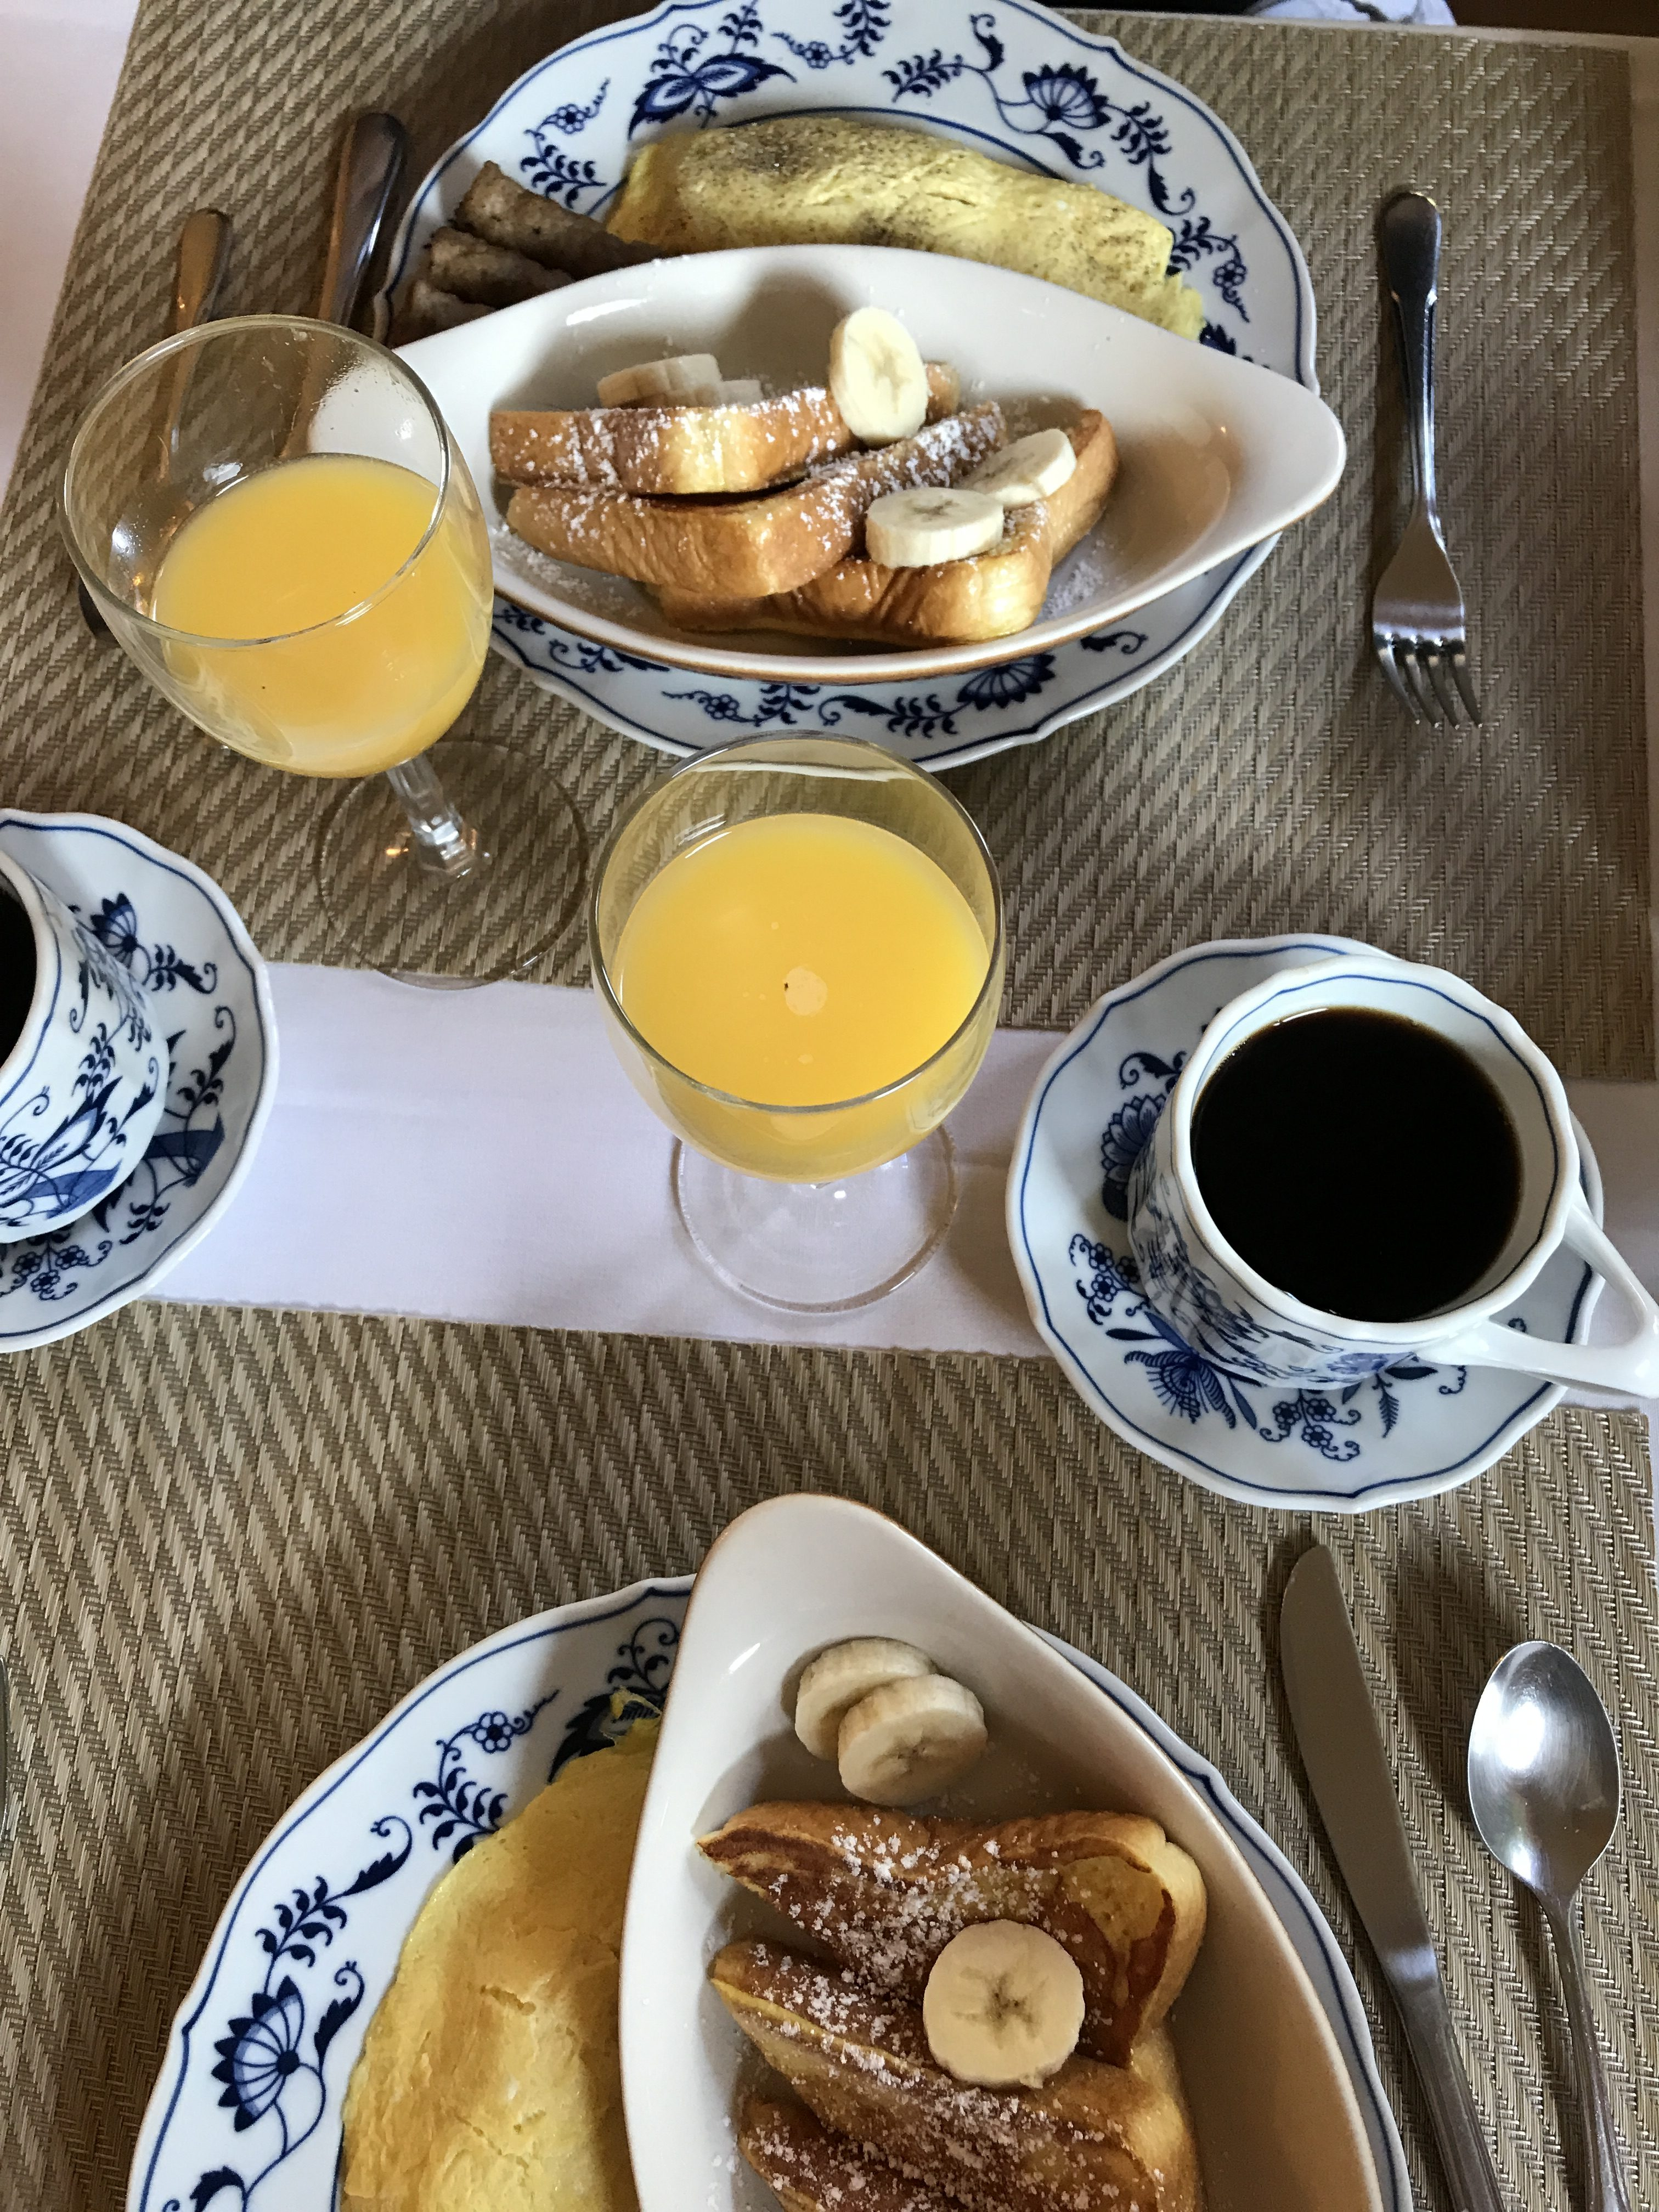 Gourmet Breakfast at Chantilly Lace Country Inn - An Anniversary Weekend in Johnson City, Texas